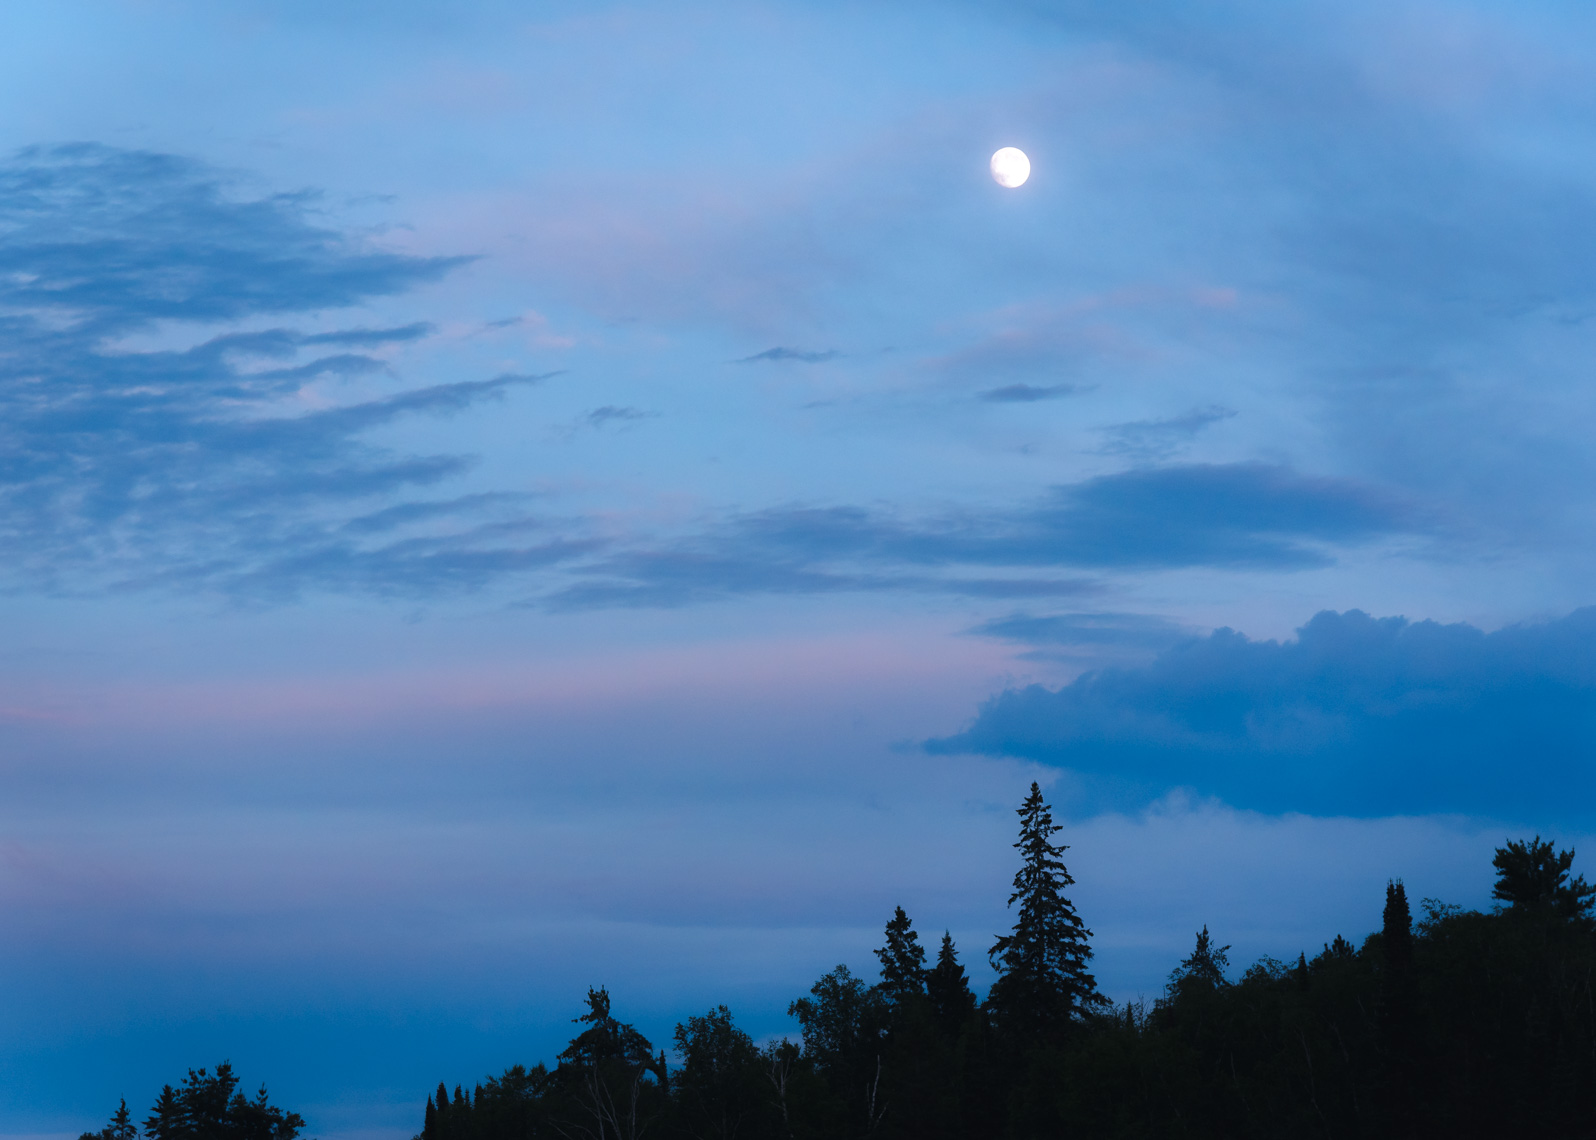 Moonlit sky at dusk with forest in the background in Algonquin Park on Lake Opeongo